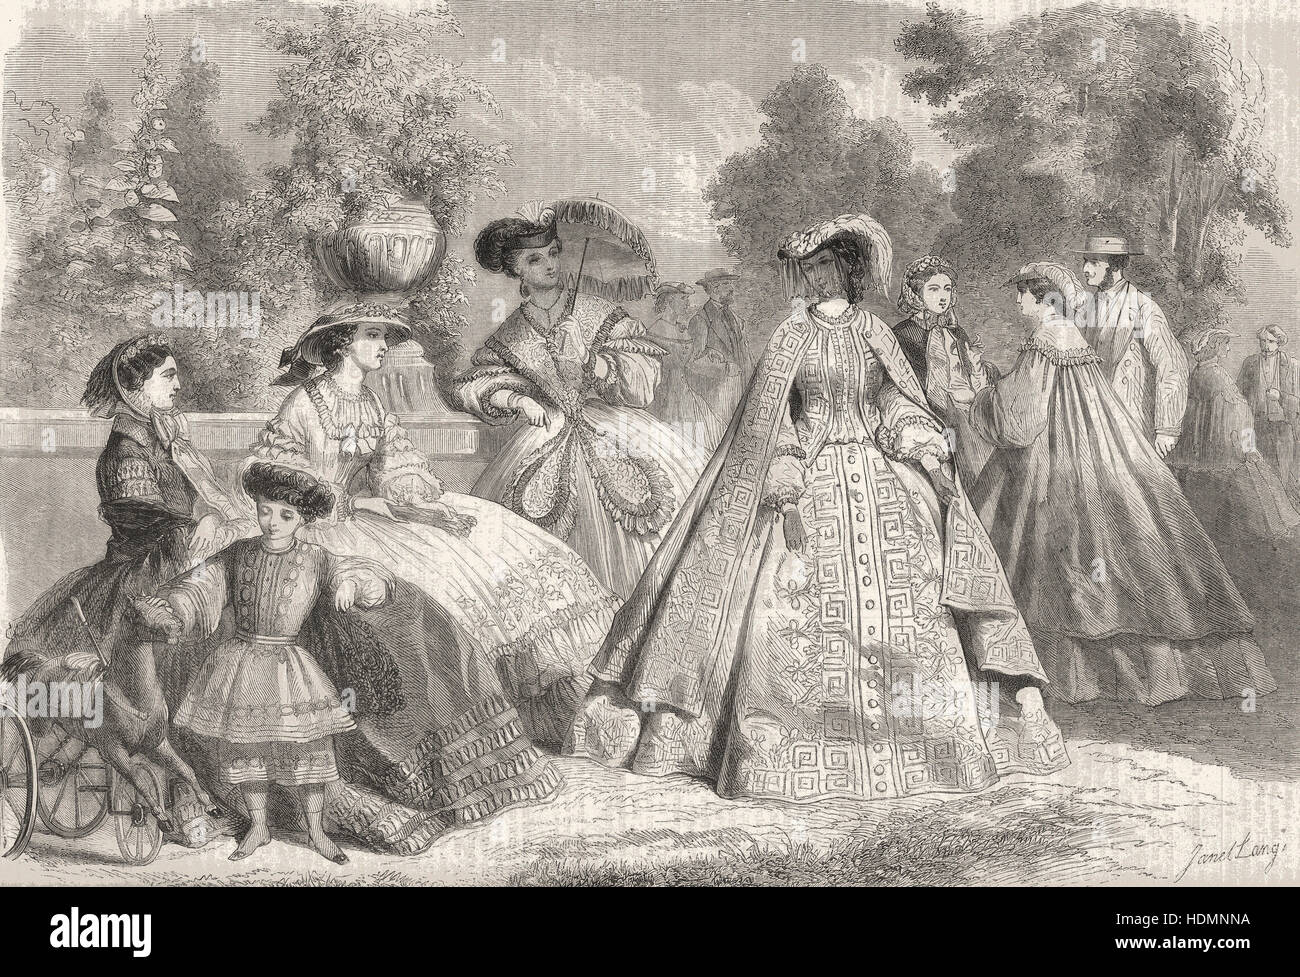 Summer Fashion, Illustration, 1861-08-11 - Stock Image